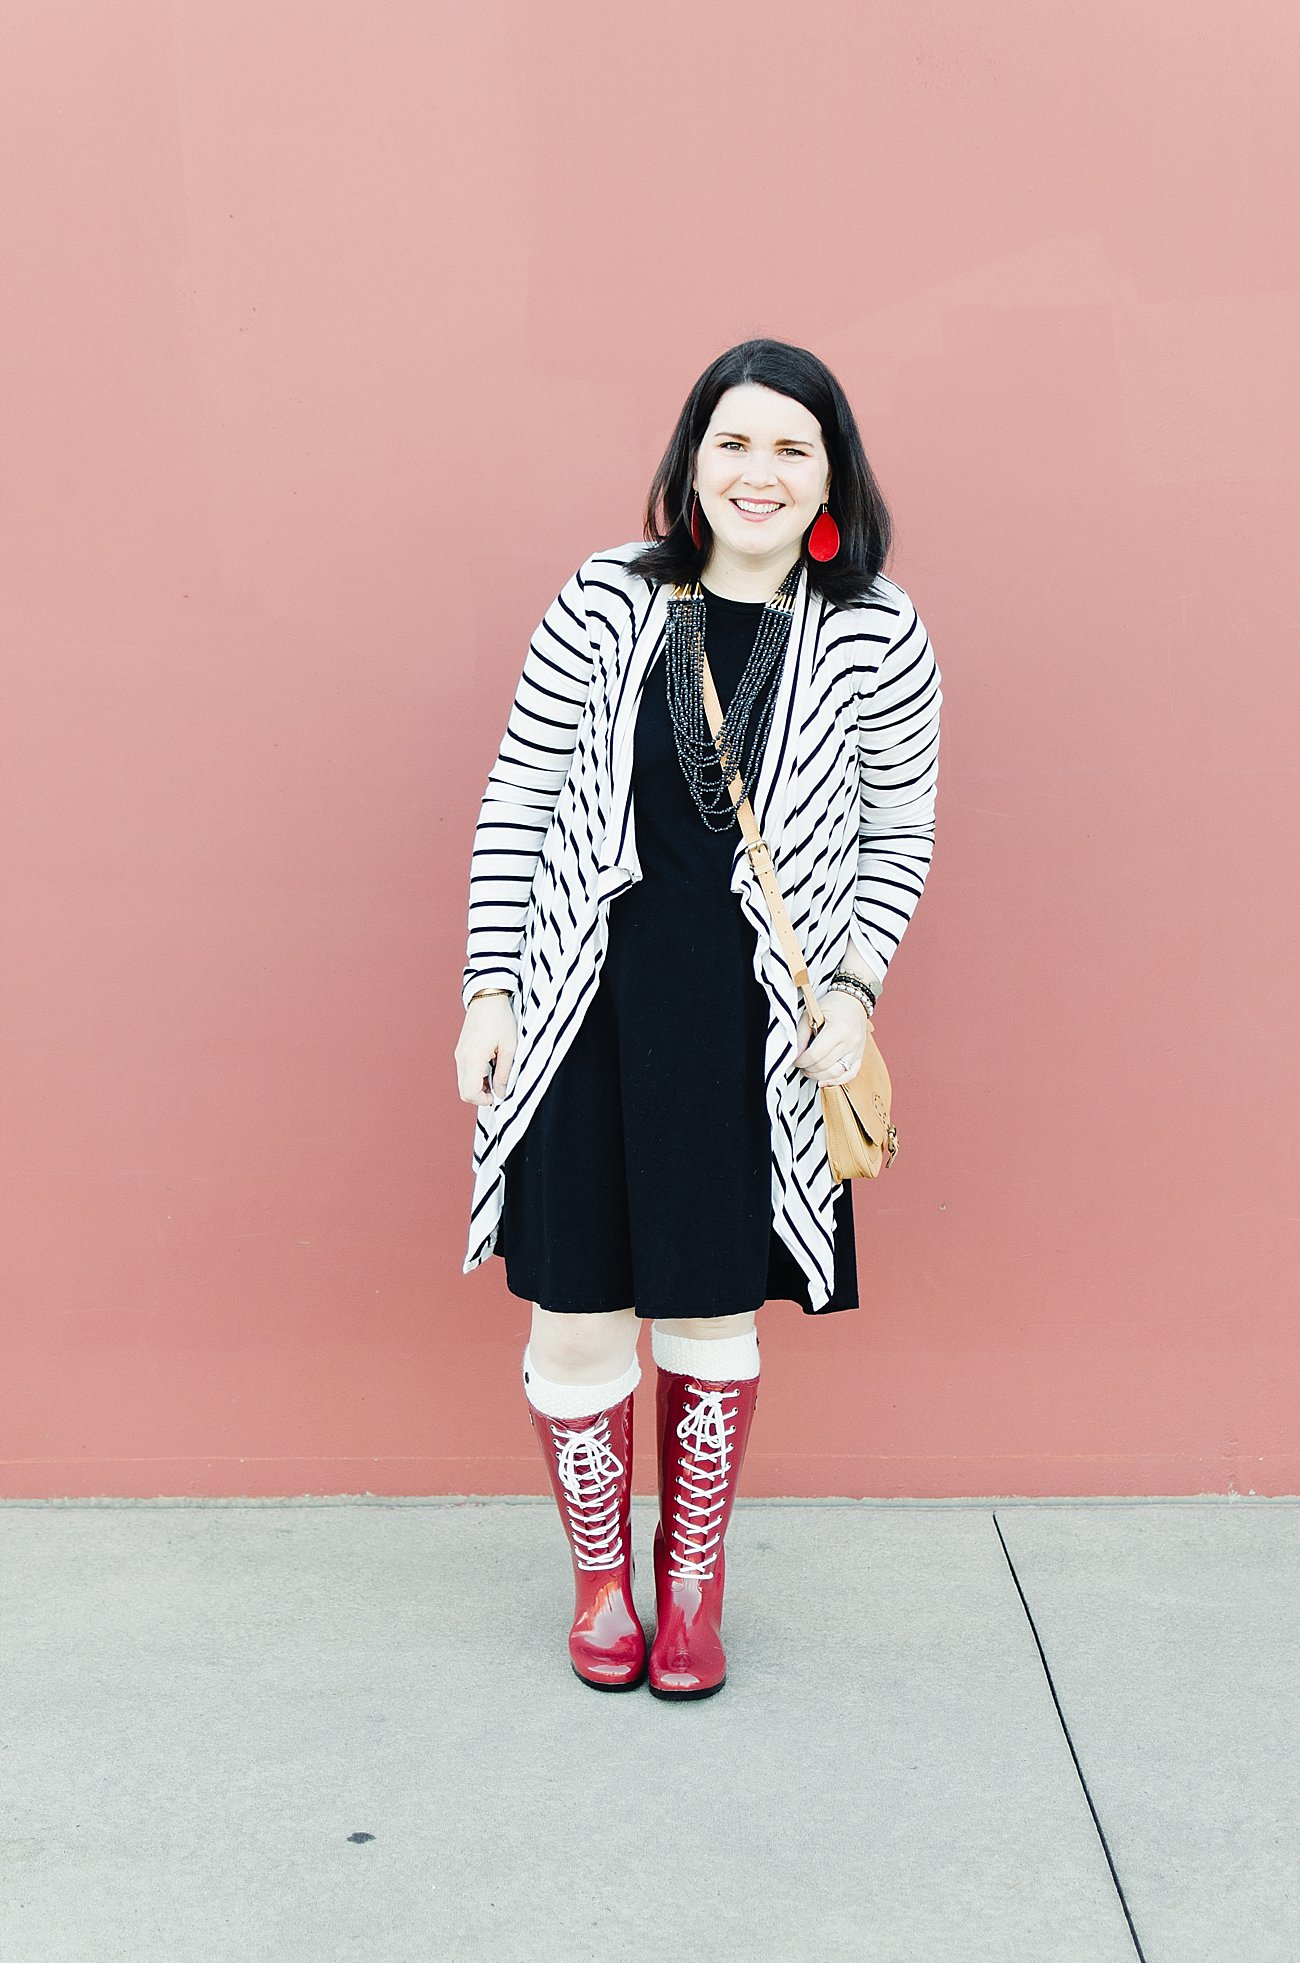 Roma Boots, LulaRoe Carly dress, Pinkblush Cardigan, Nickel and Suede Earrings, Noonday Collection exploration bag, Noonday Collection midnight necklace (2)